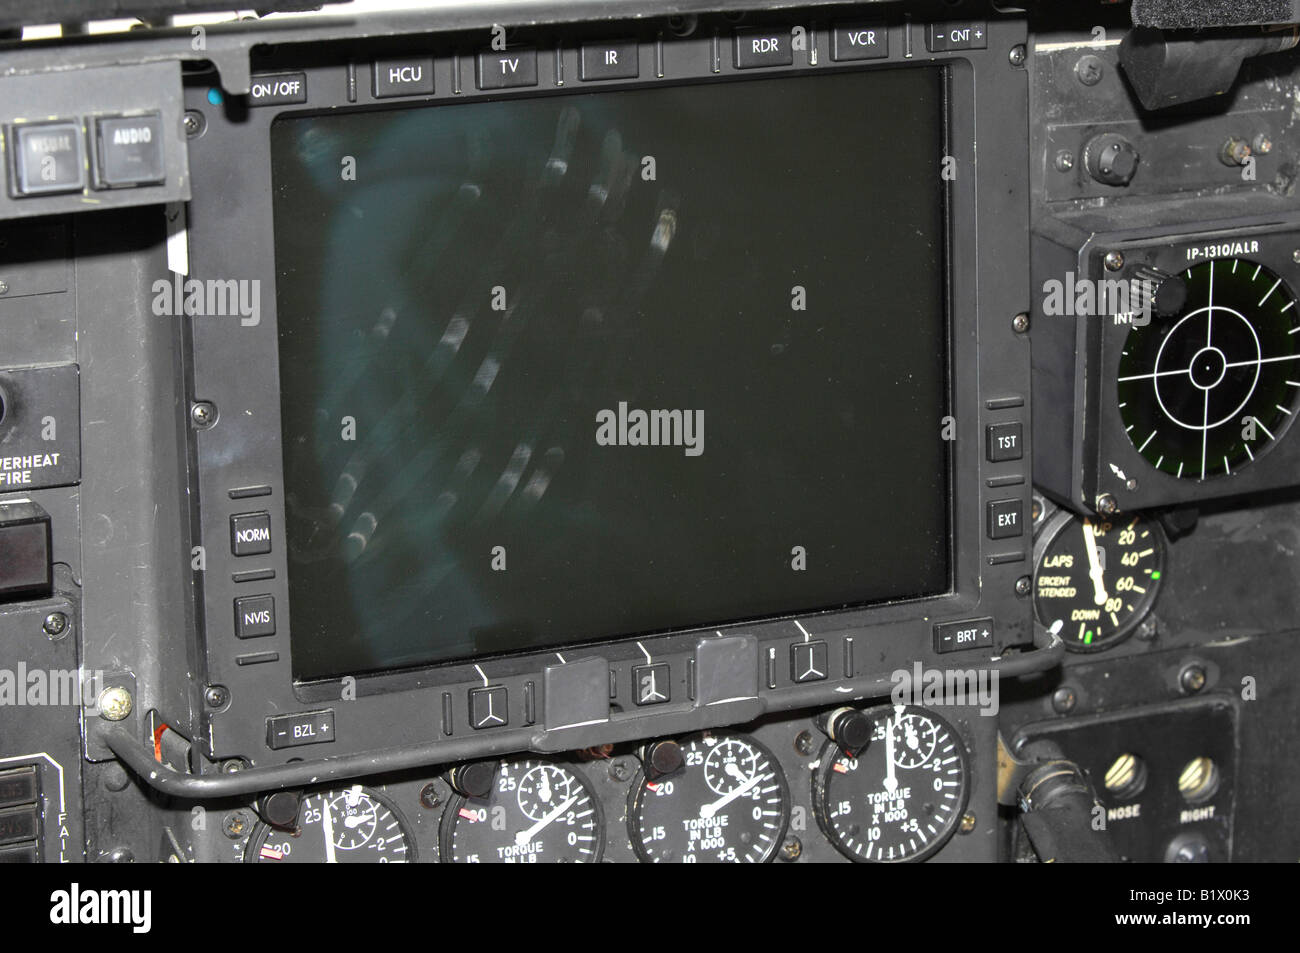 Aircraft multifunction display. - Stock Image